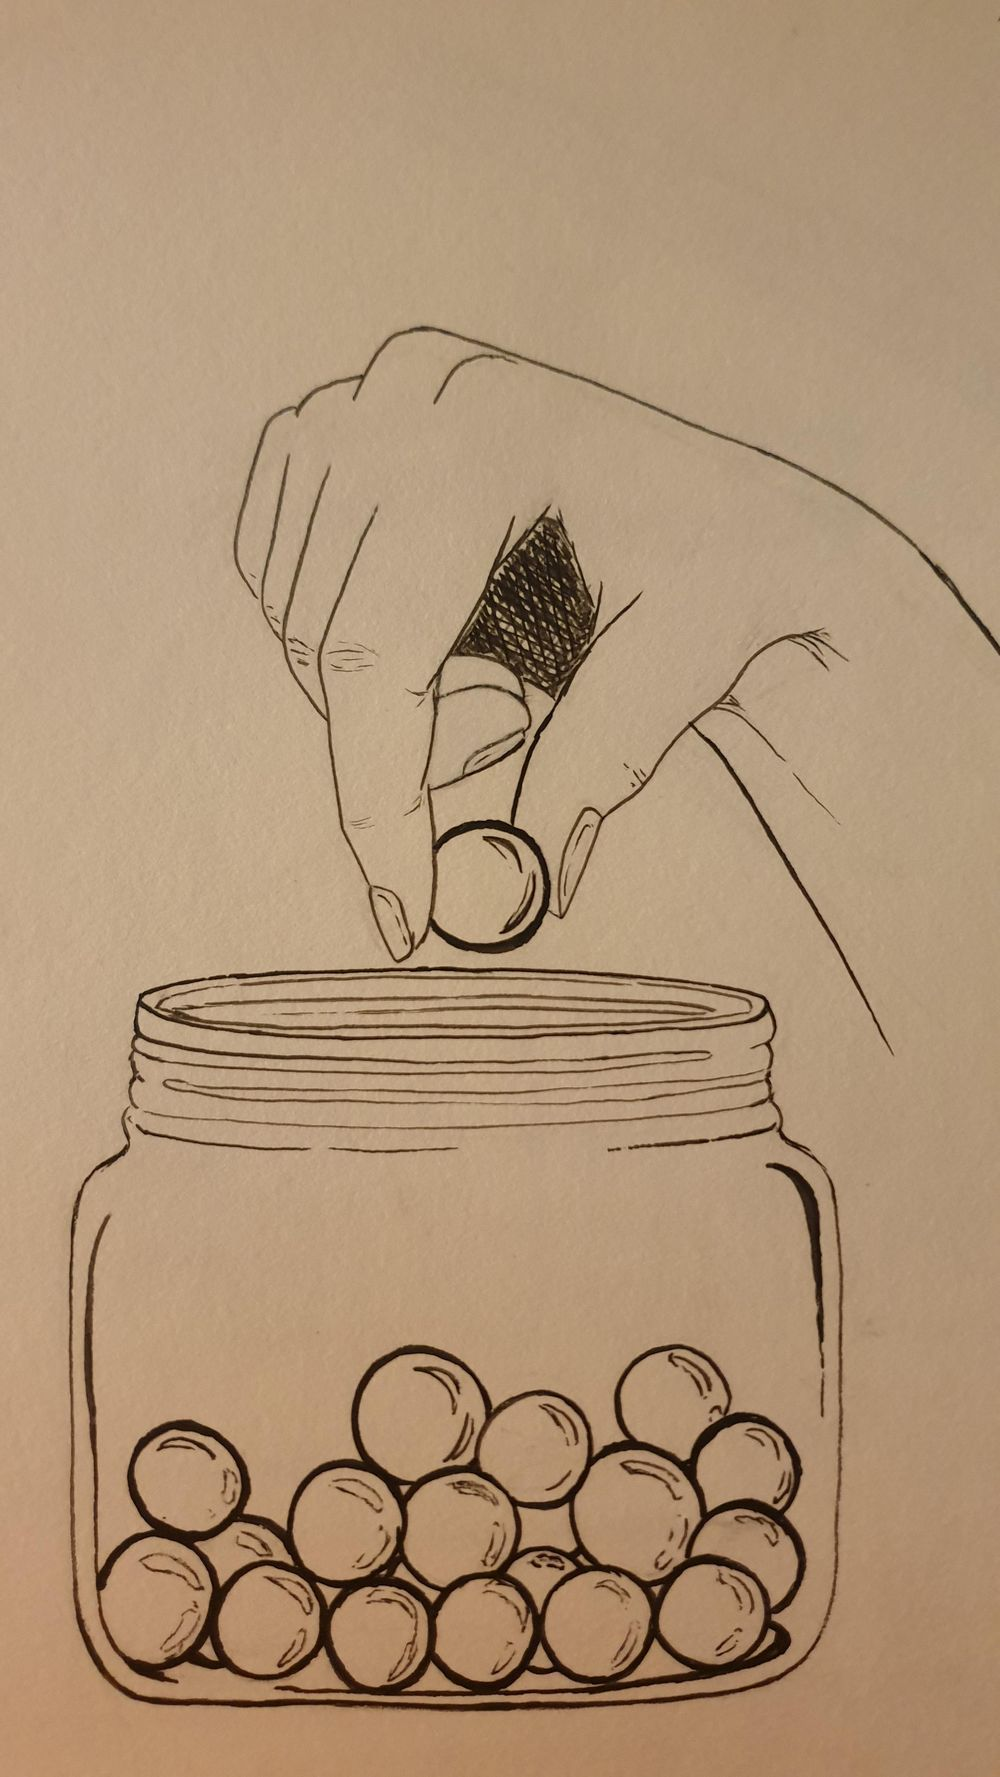 Candy jar - image 1 - student project